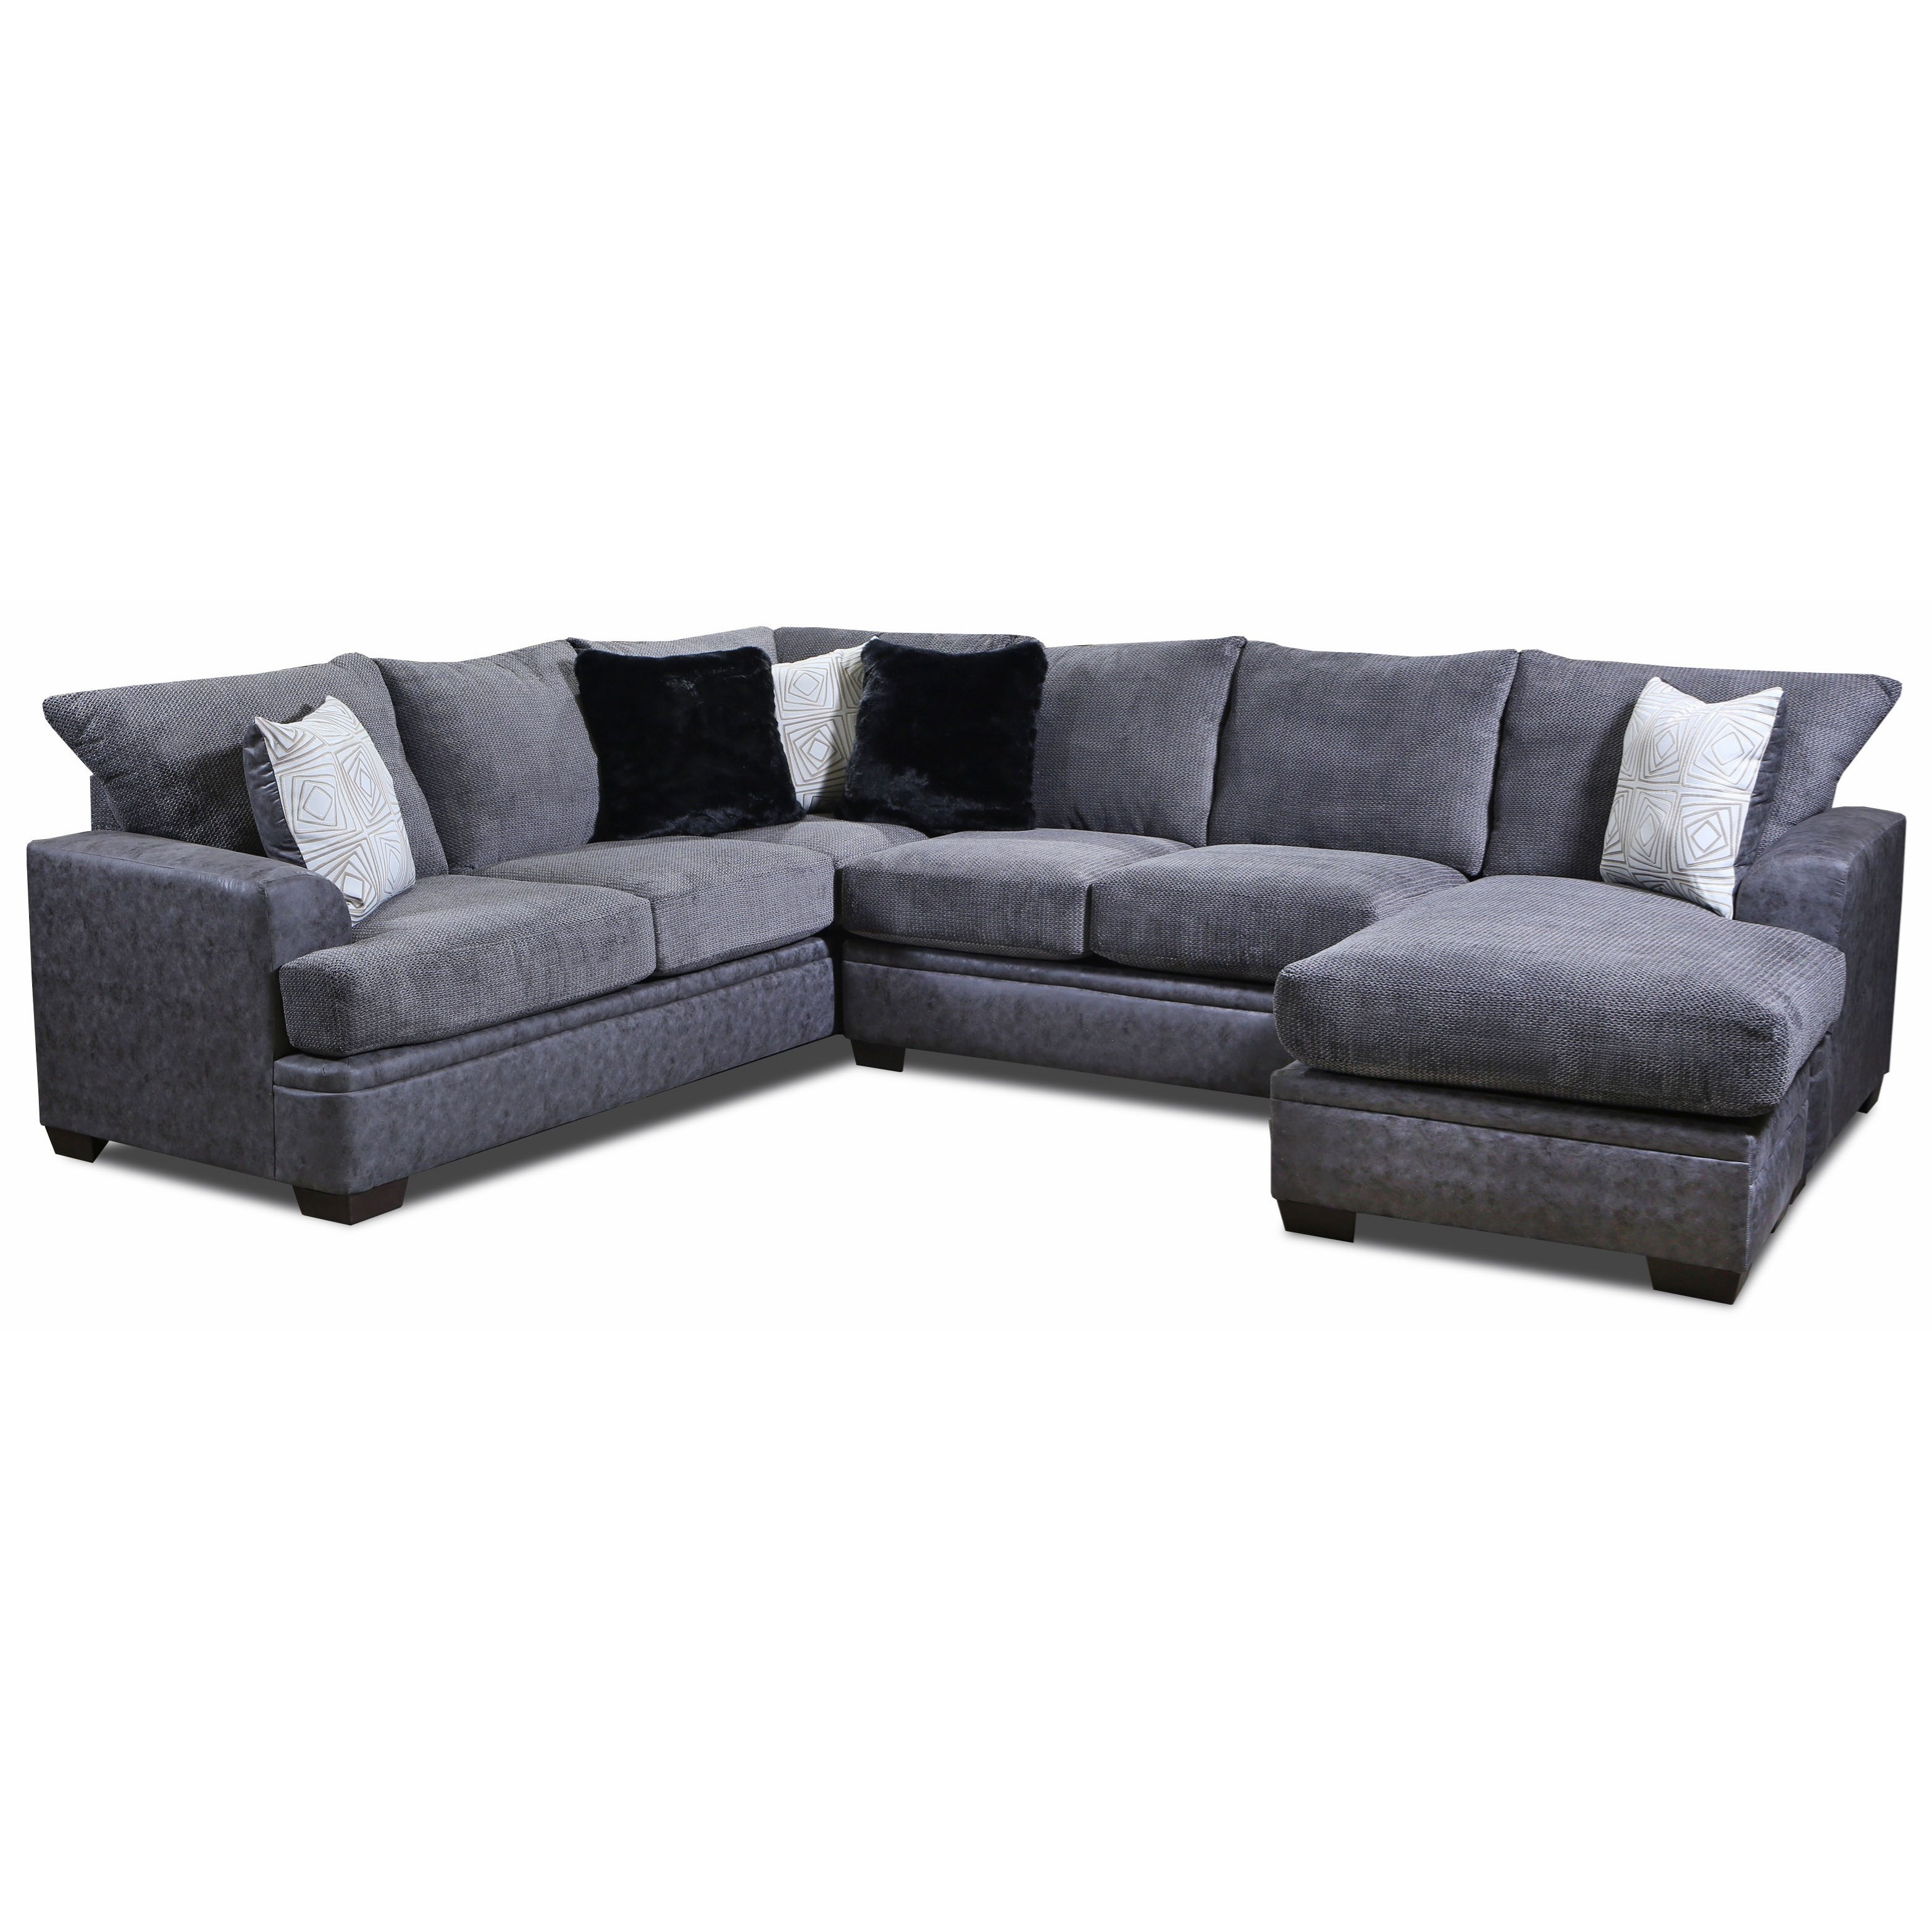 6800 Sectional Sofa with Right Side Chaise by Peak Living at Prime Brothers Furniture